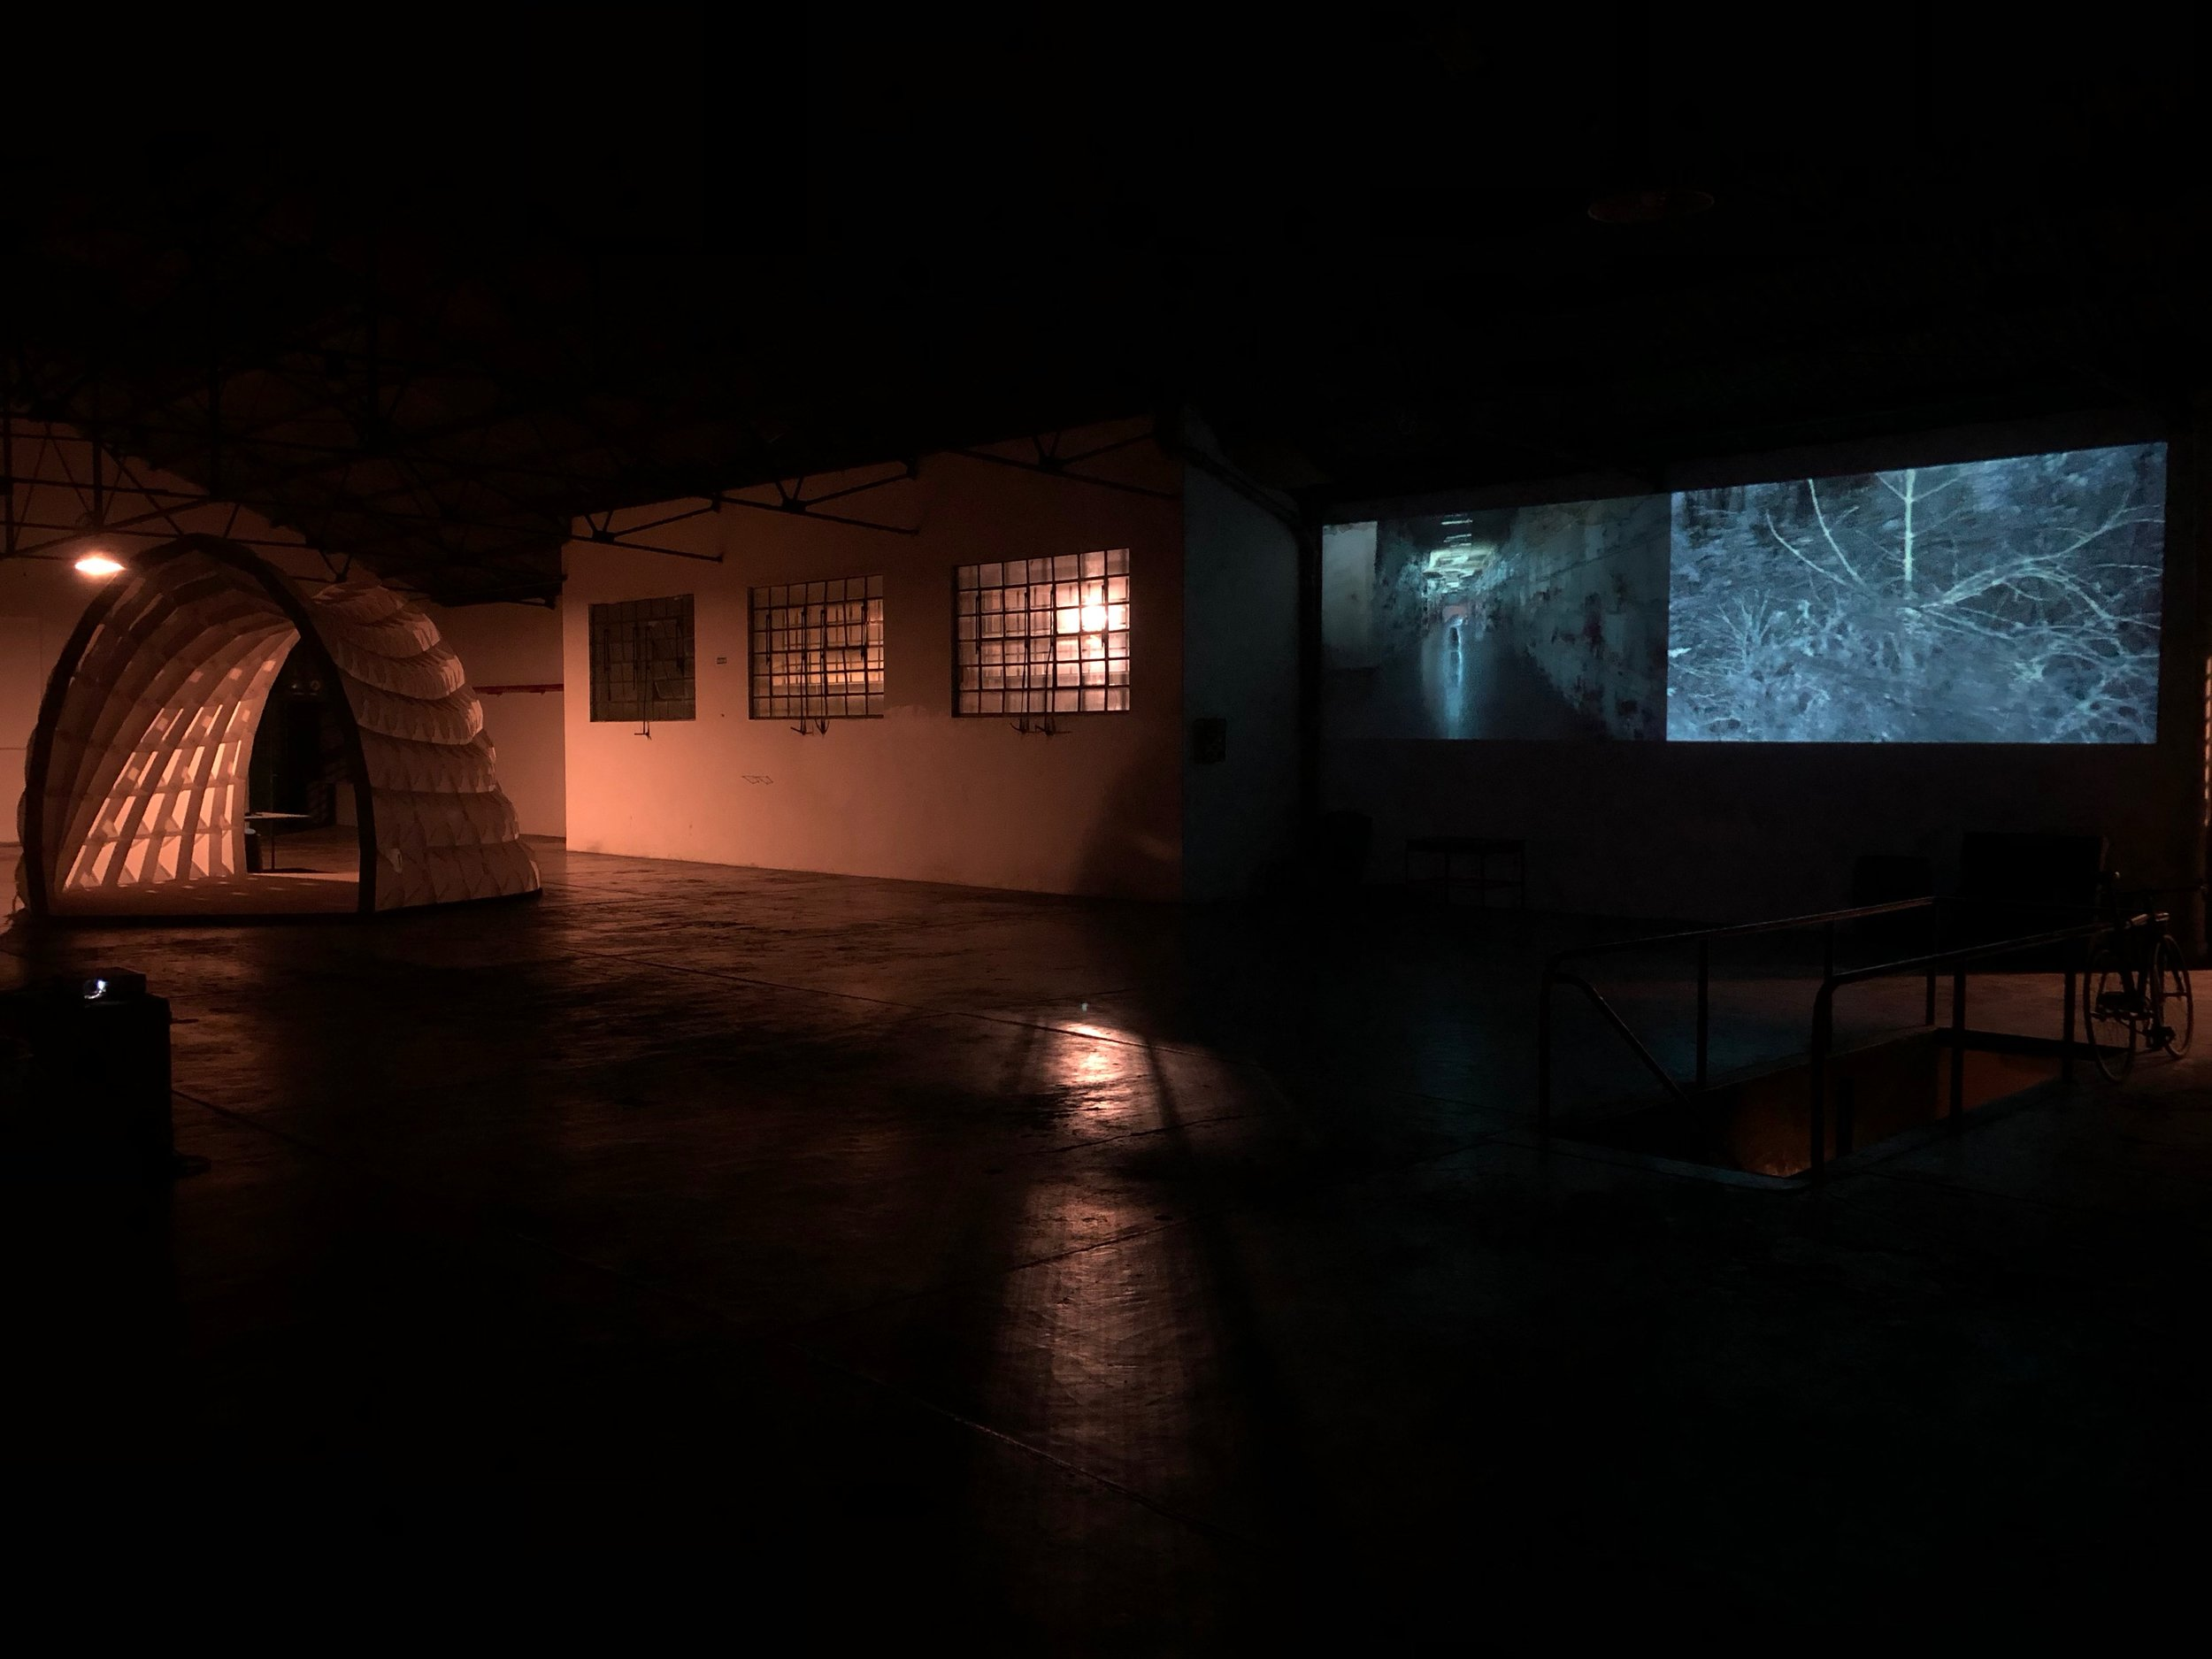 Installation shot at La Ira de Dios in Buenos Aires, Argentina. Initial test footage from Yellow Fever Graves and Post-Cyclone Bombs.